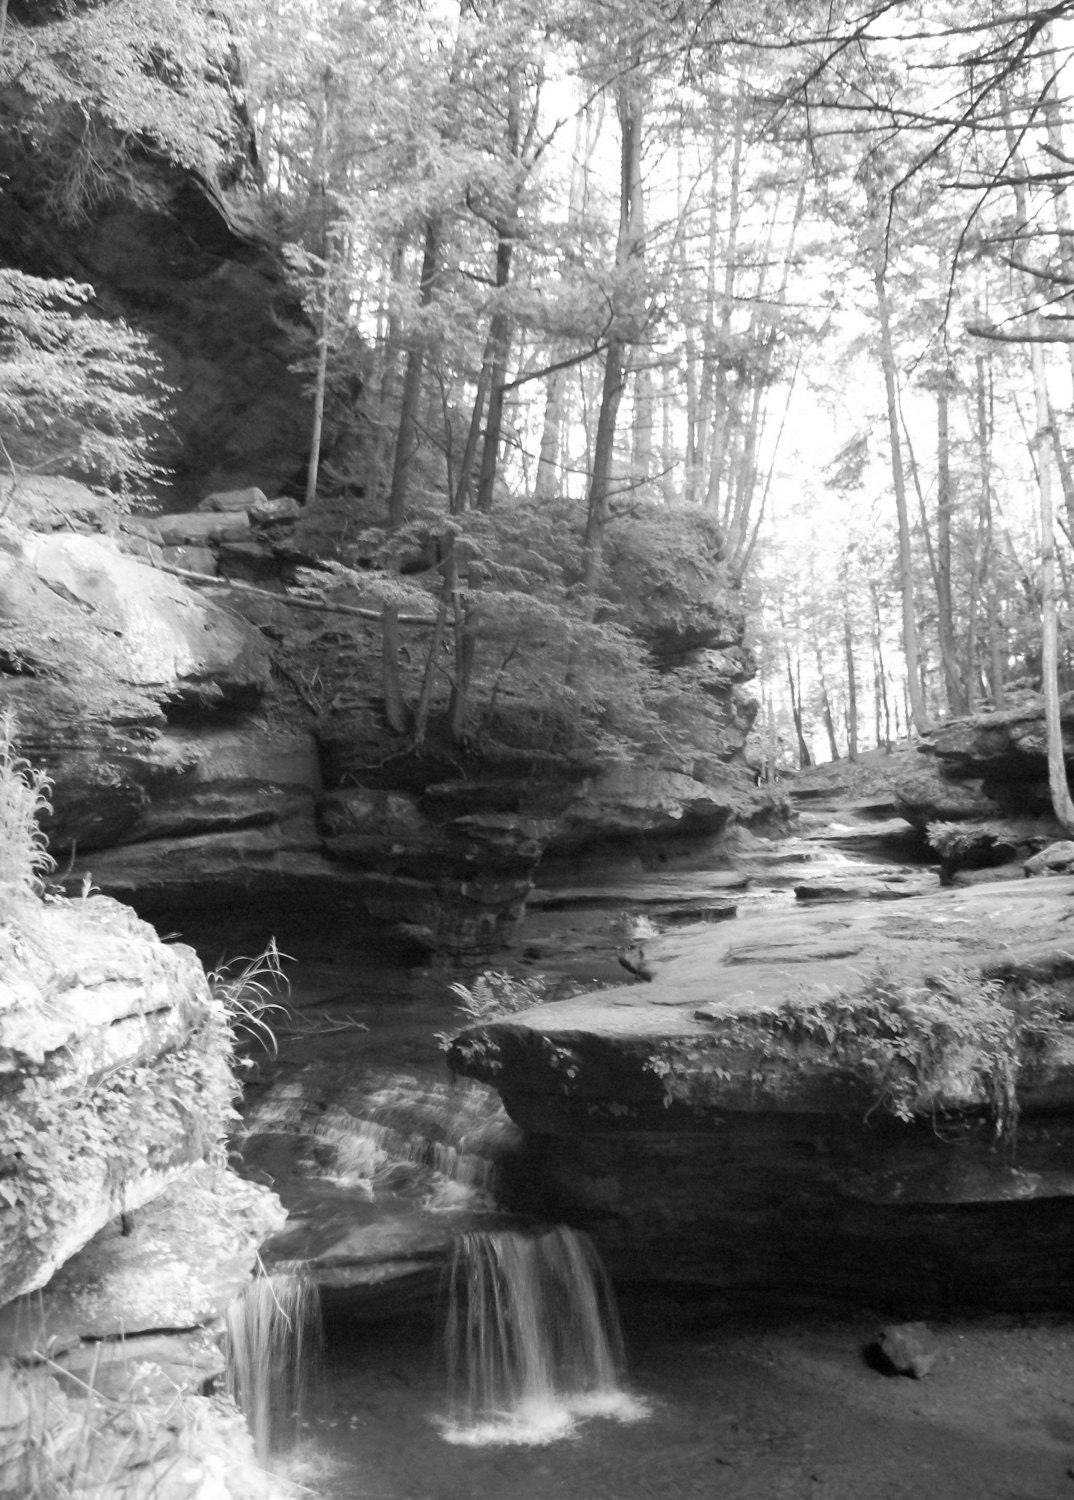 5x7 natural waterfall forest photography unedited original photograph black and white fine art print river scene nature